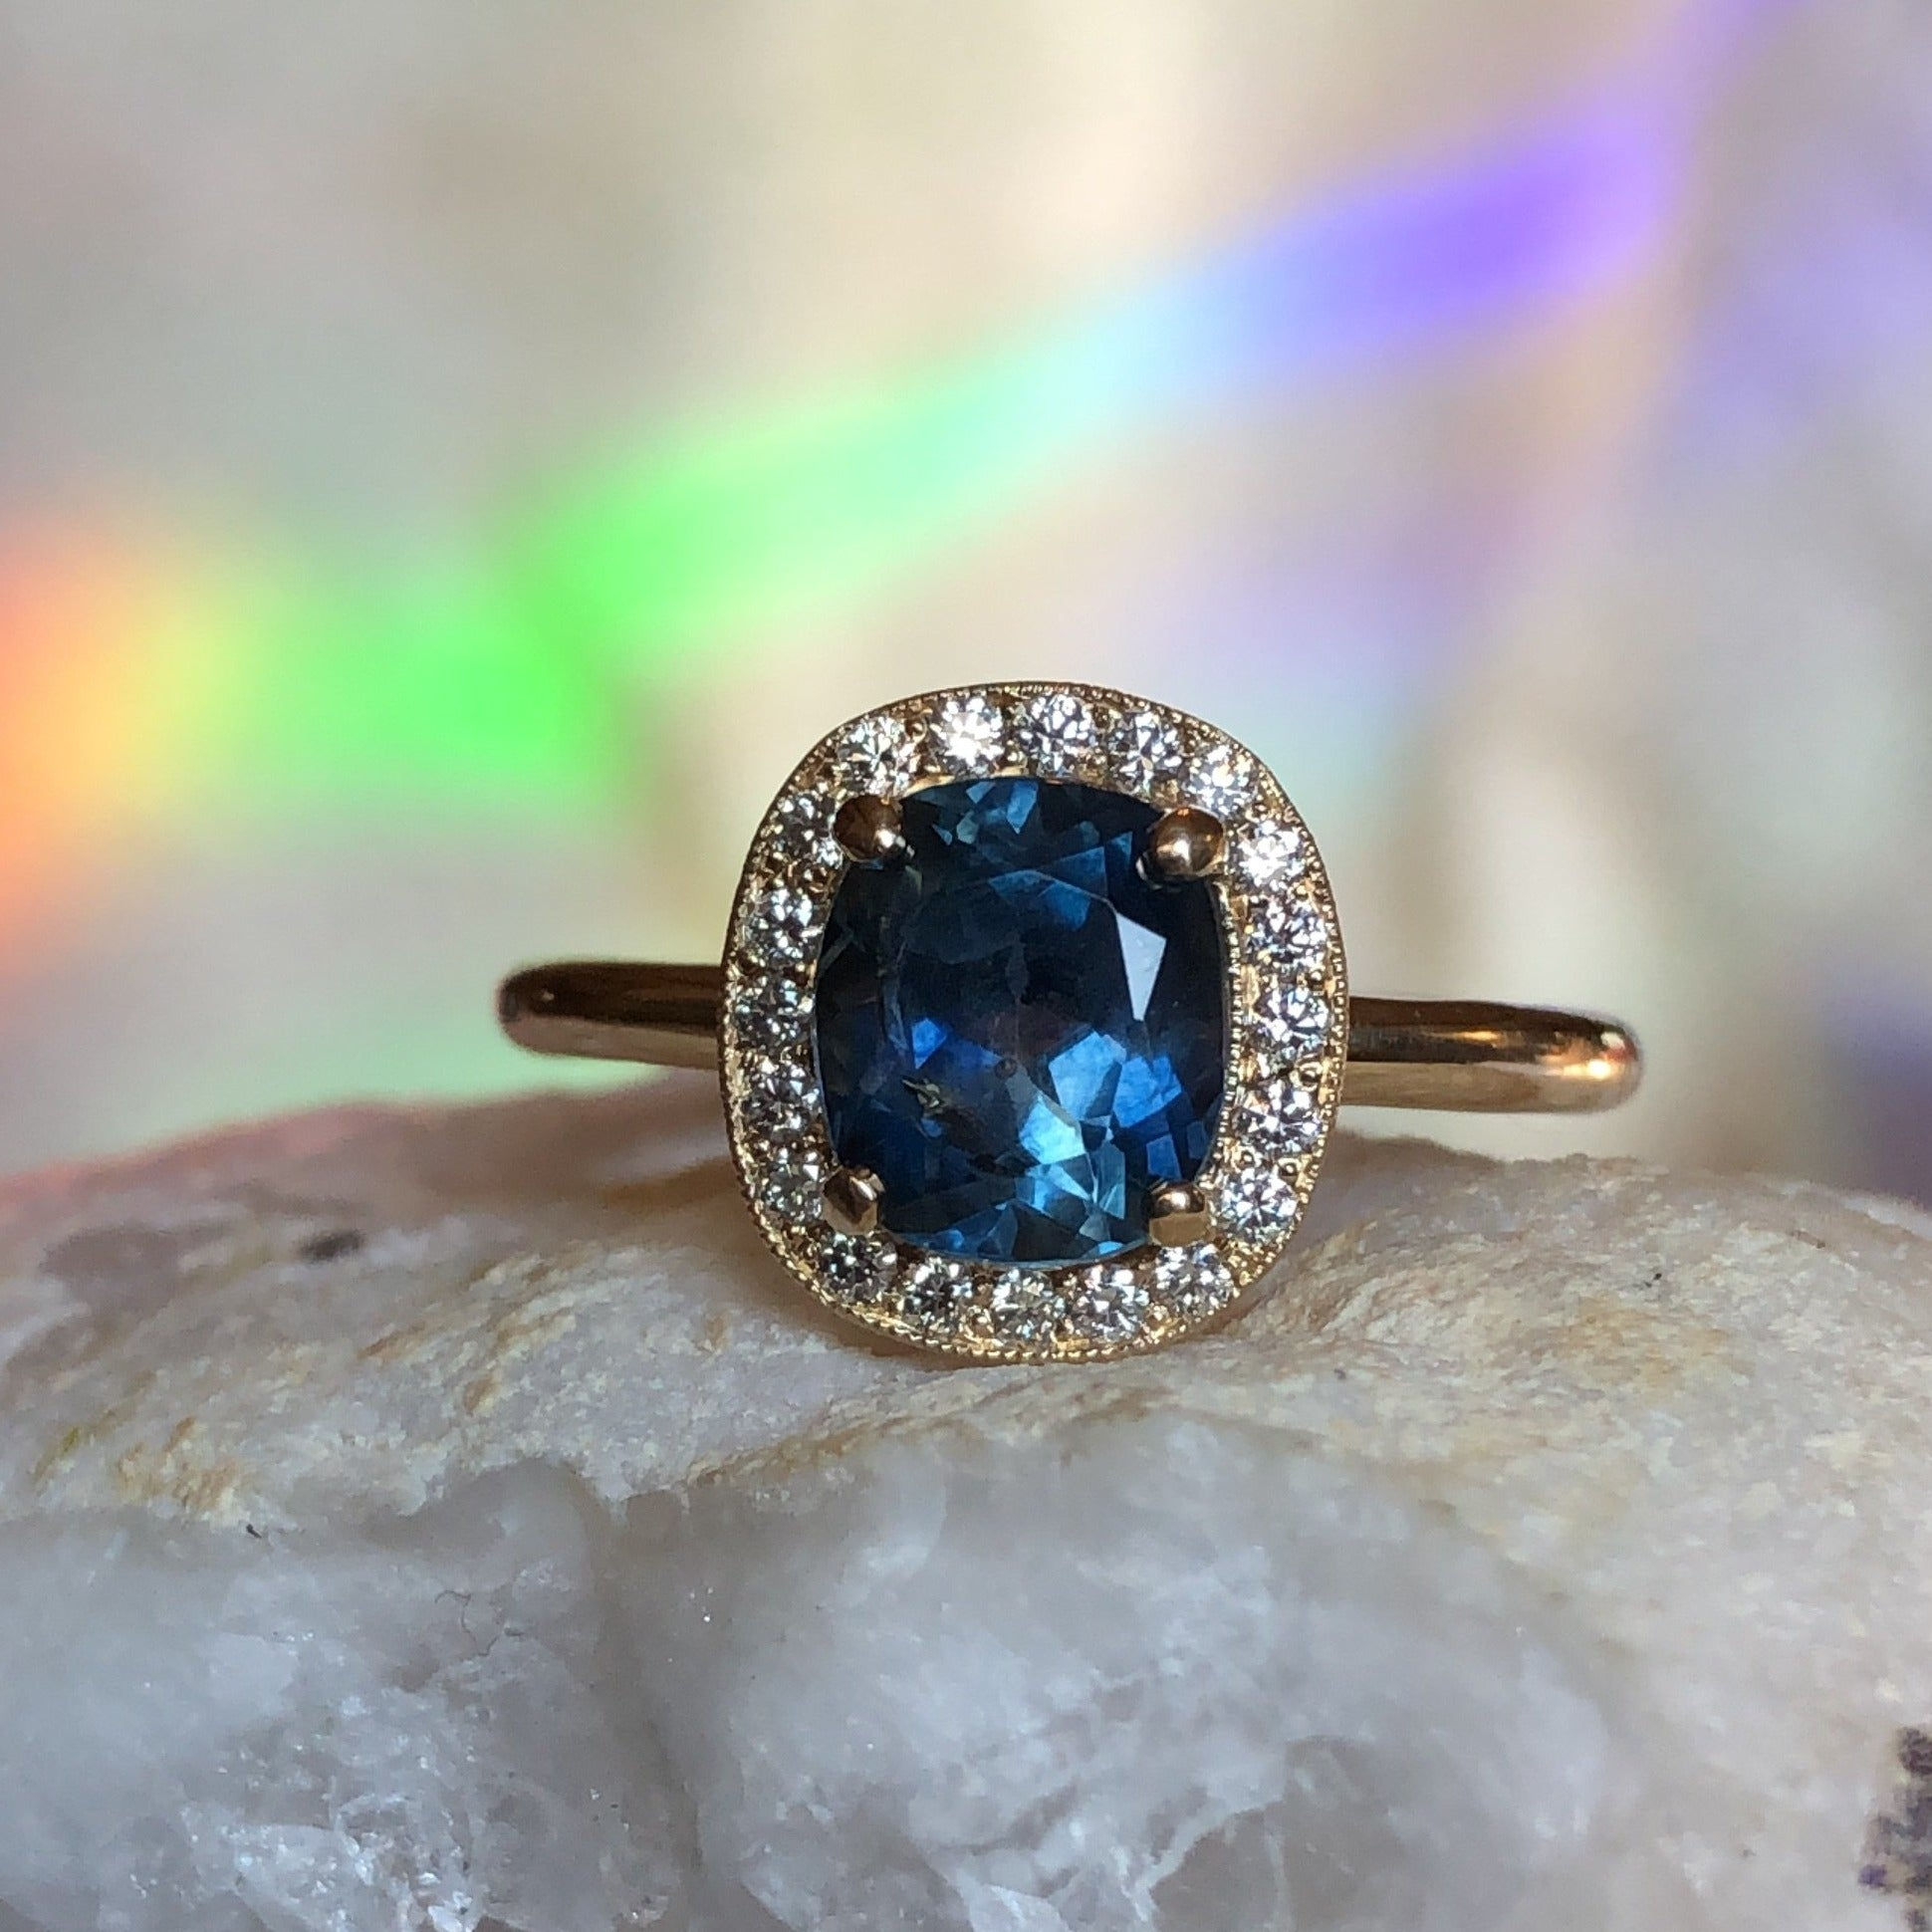 Montana Sapphire Cushion Cut Starry Night Halo Ring in 14 karat Yellow Gold